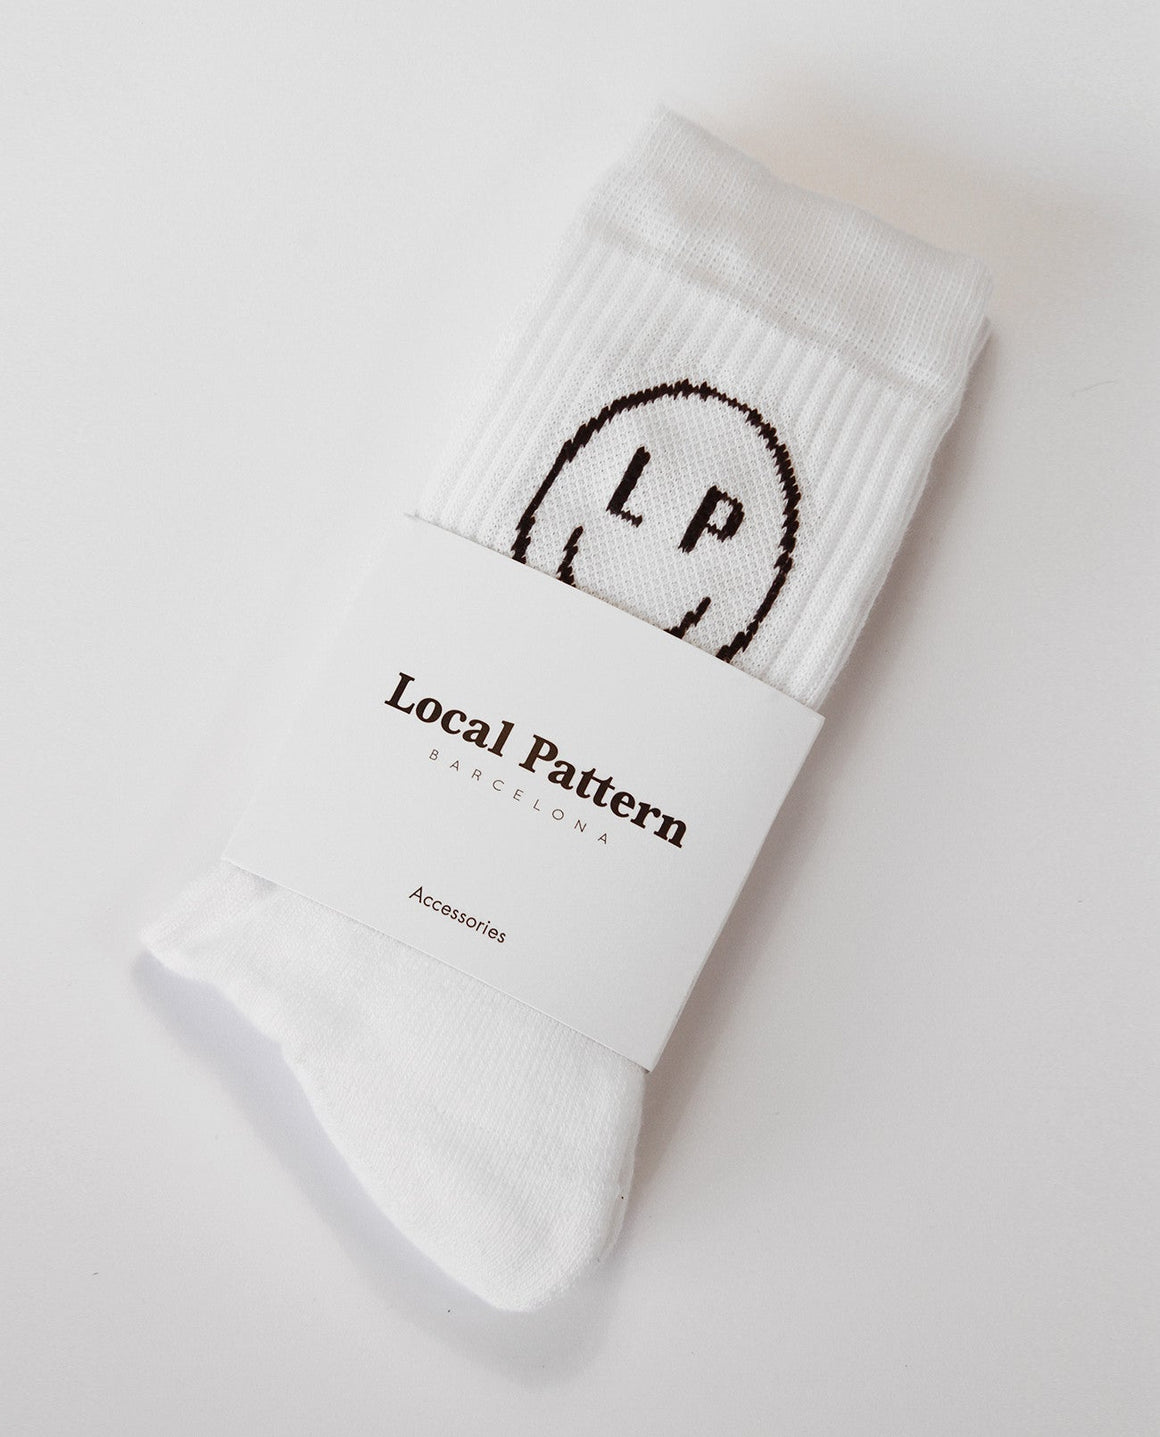 Smile LP White Socks - Local Pattern  - 2